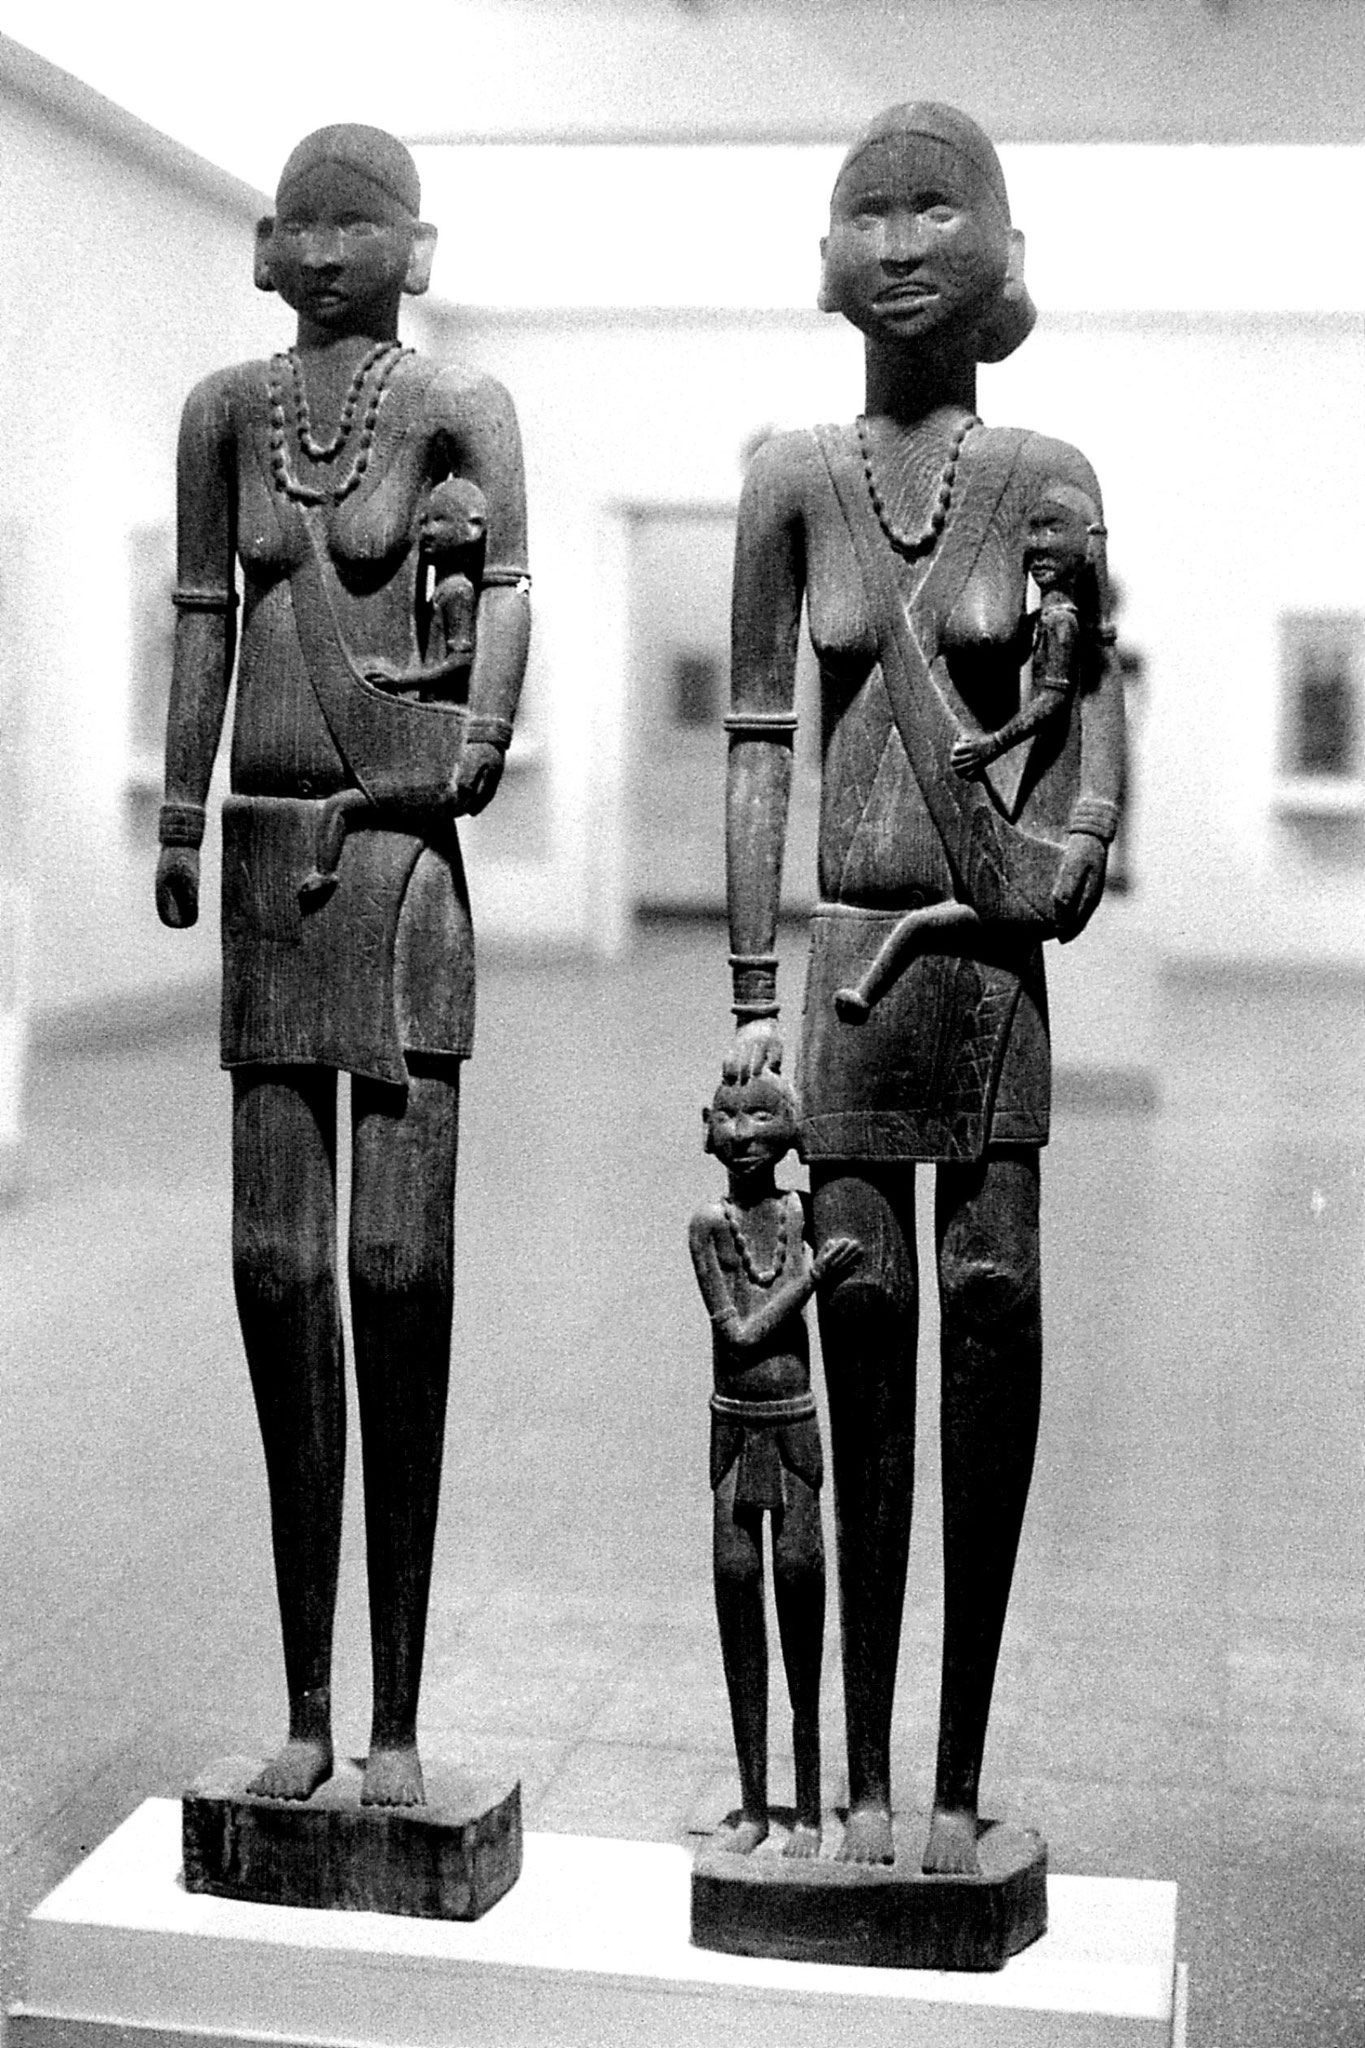 26/11/1989: 33: National Museum, Muria tribe